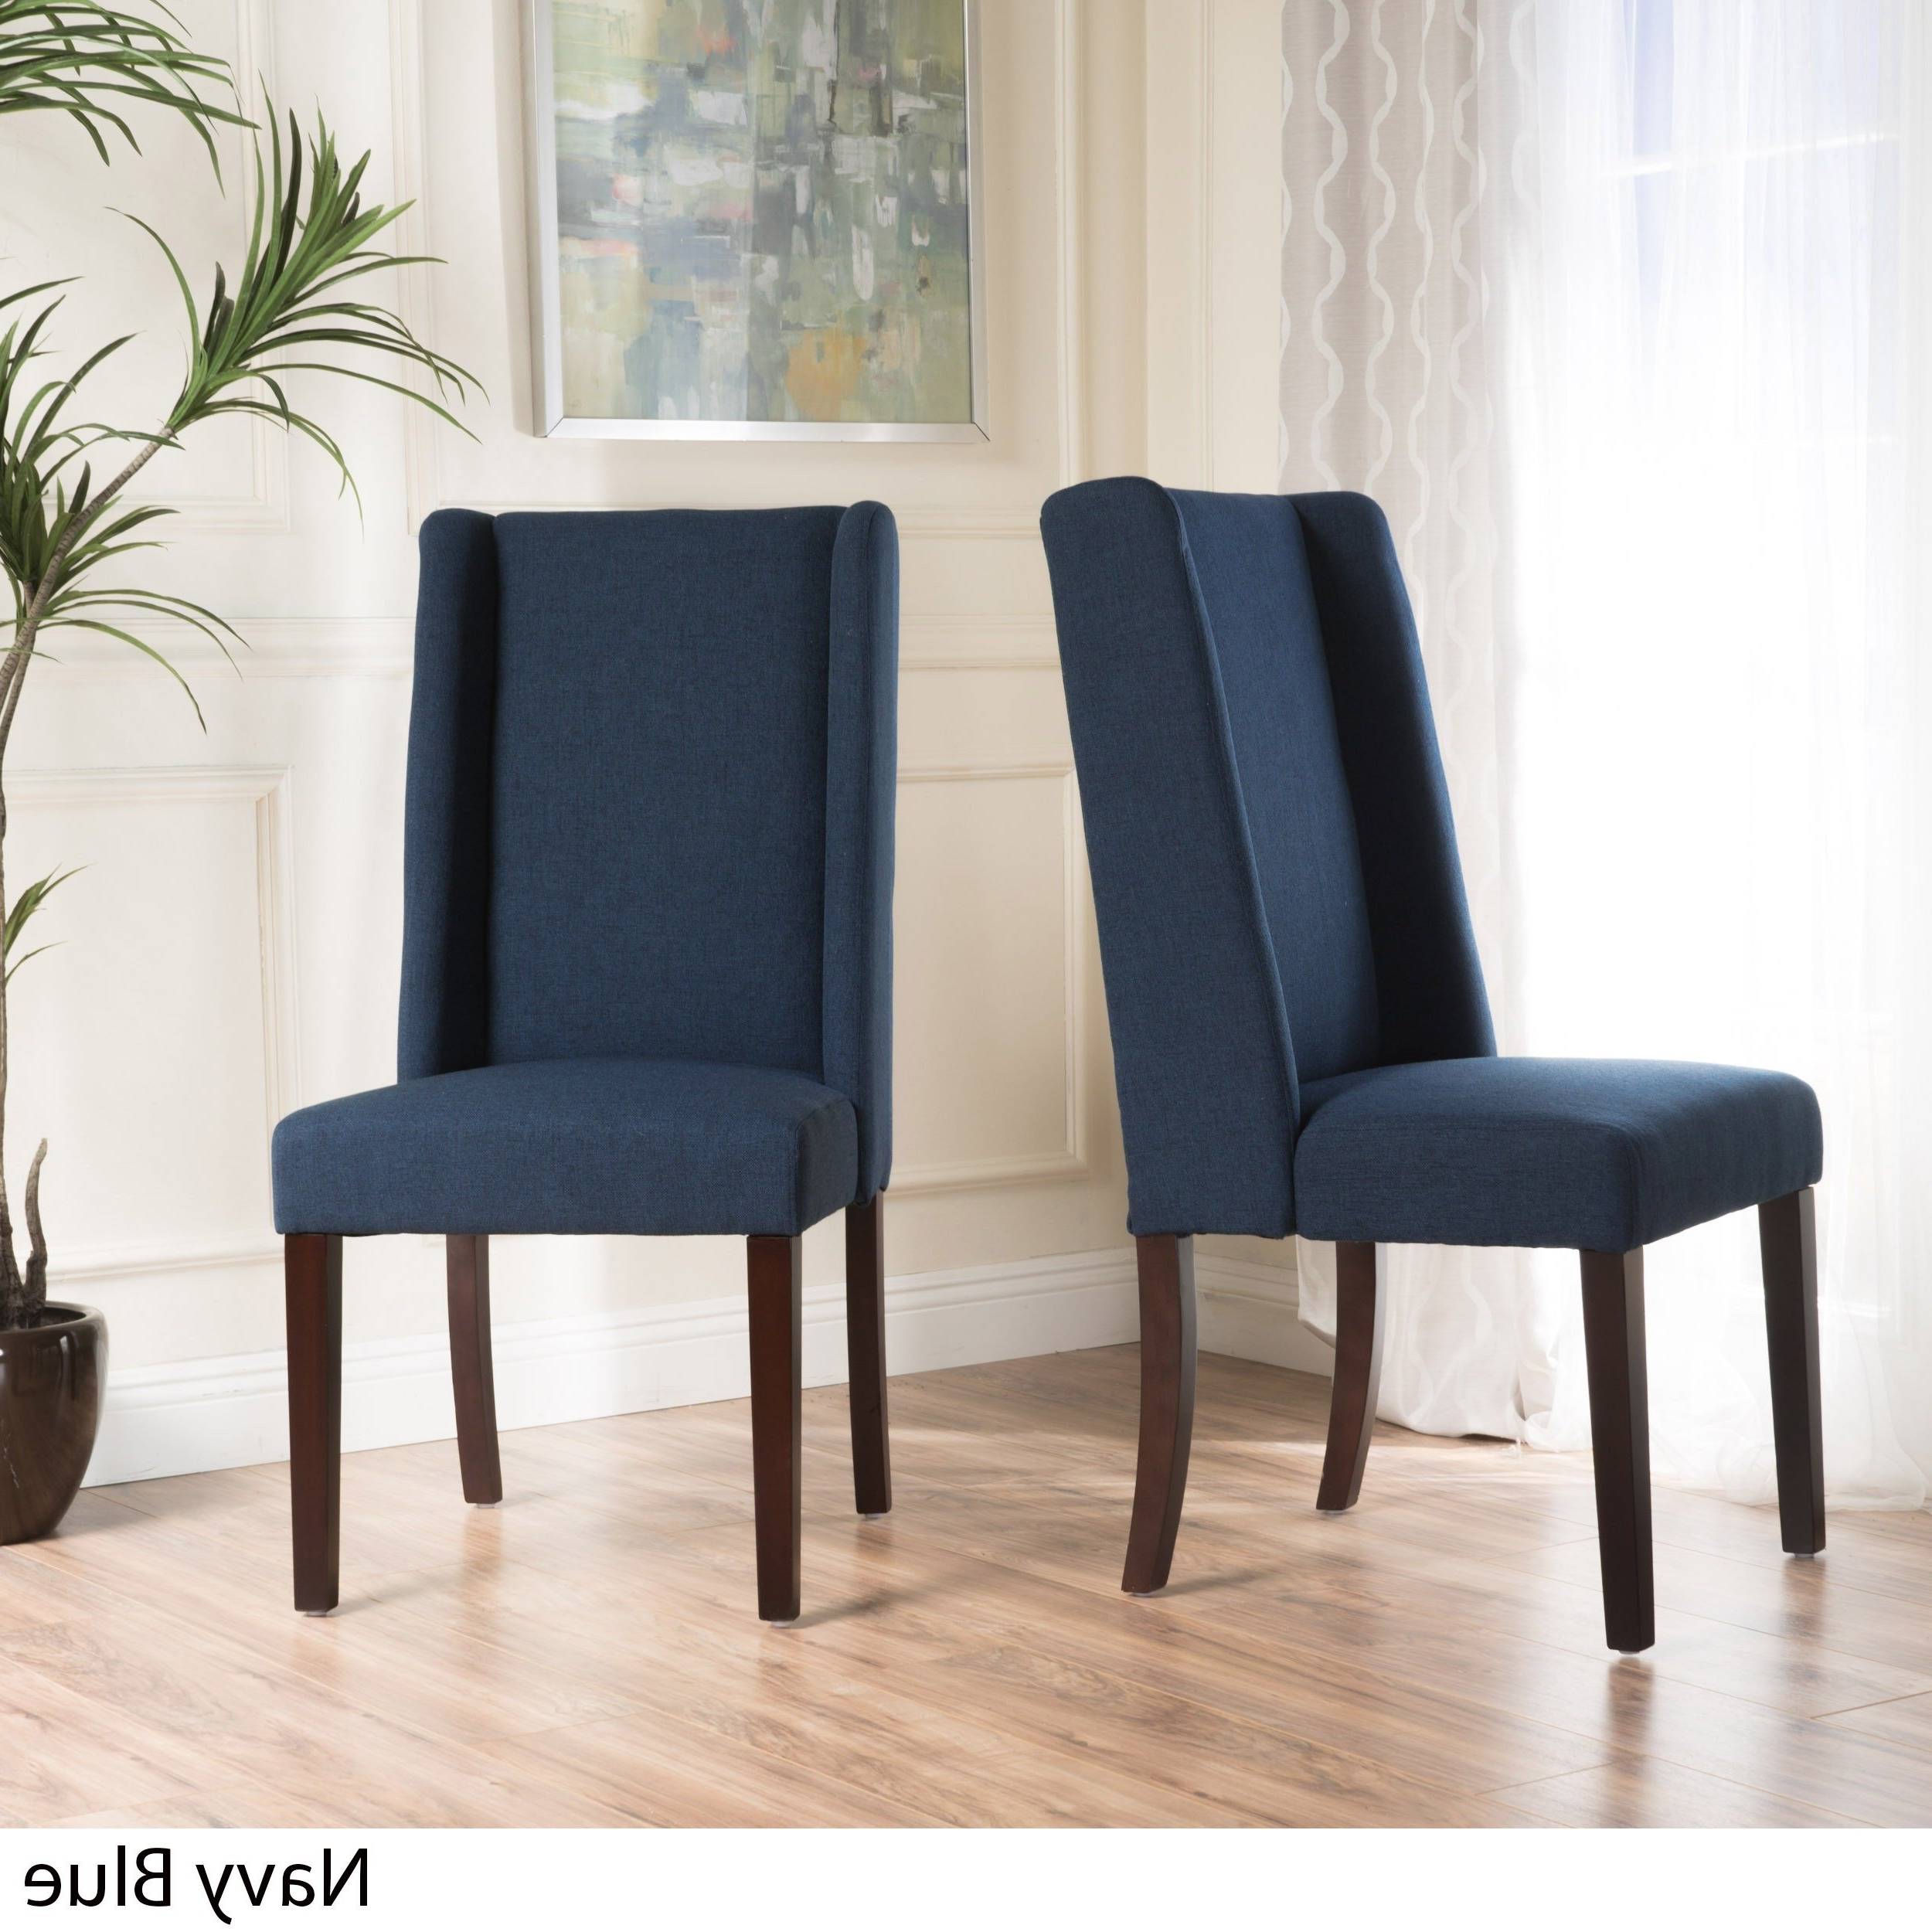 Preferred Shop Rory Wing Back Fabric Dining Chair (Set Of 2)Christopher Regarding Rory Sofa Chairs (View 12 of 20)